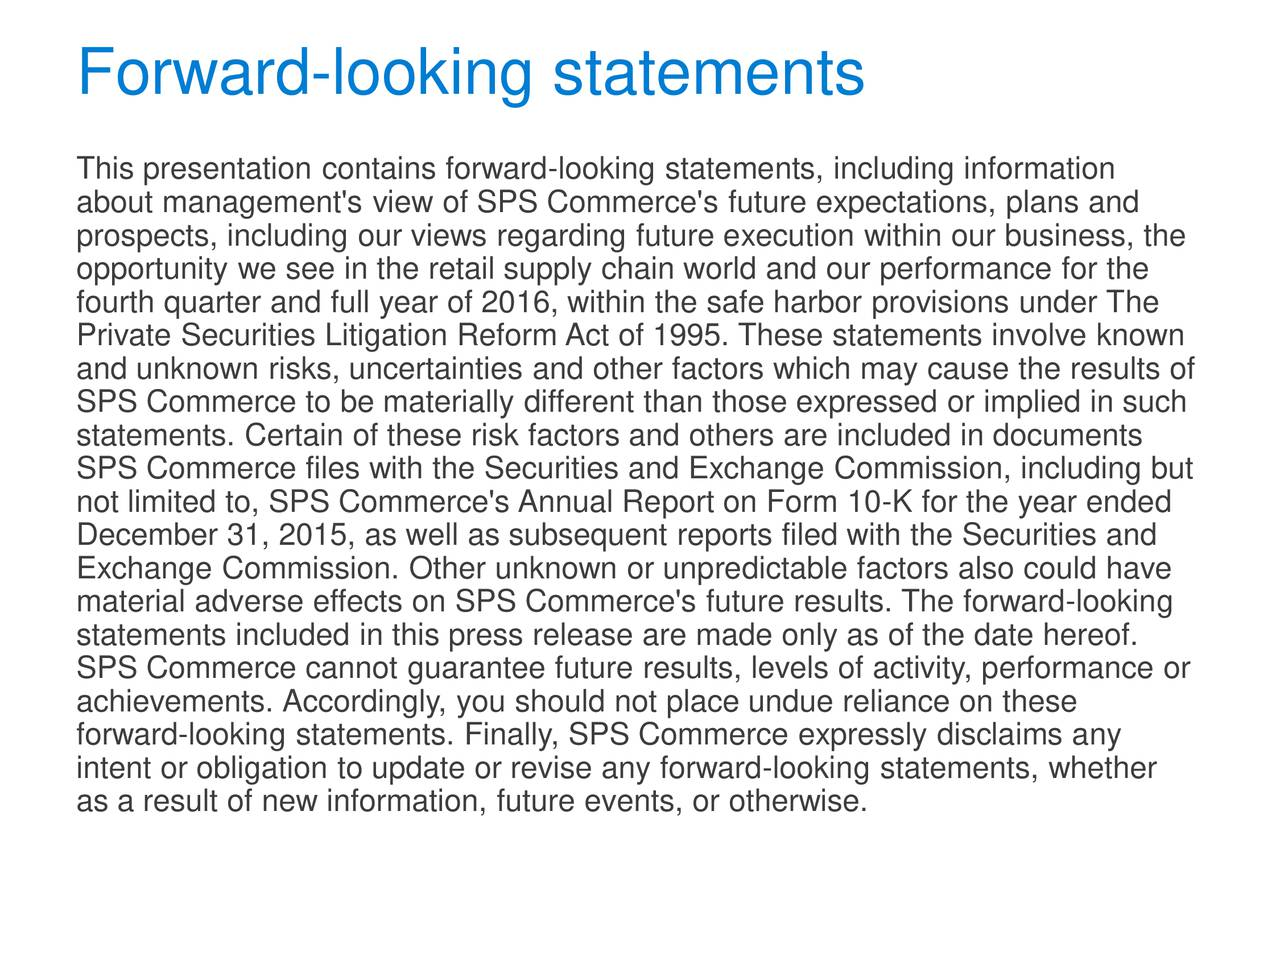 This presentation contains forward-looking statements, including information about management's view of SPS Commerce's future expectations, plans and prospects, including our views regarding future execution within our business, the opportunity we see in the retail supply chain world and our performance for the fourth quarter and full year of 2016, within the safe harbor provisions under The Private Securities Litigation Reform Act of 1995. These statements involve known and unknown risks, uncertainties and other factors which may cause the results of SPS Commerce to be materially different than those expressed or implied in such statements. Certain of these risk factors and others are included in documents SPS Commerce files with the Securities and Exchange Commission, including but not limited to, SPS Commerce's Annual Report on Form 10-K for the year ended December 31, 2015, as well as subsequent reports filed with the Securities and Exchange Commission. Other unknown or unpredictable factors also could have material adverse effects on SPS Commerce's future results. The forward-looking statements included in this press release are made only as of the date hereof. SPS Commerce cannot guarantee future results, levels of activity, performance or achievements. Accordingly, you should not place undue reliance on these forward-looking statements. Finally, SPS Commerce expressly disclaims any intent or obligation to update or revise any forward-looking statements, whether as a result of new information, future events, or otherwise.